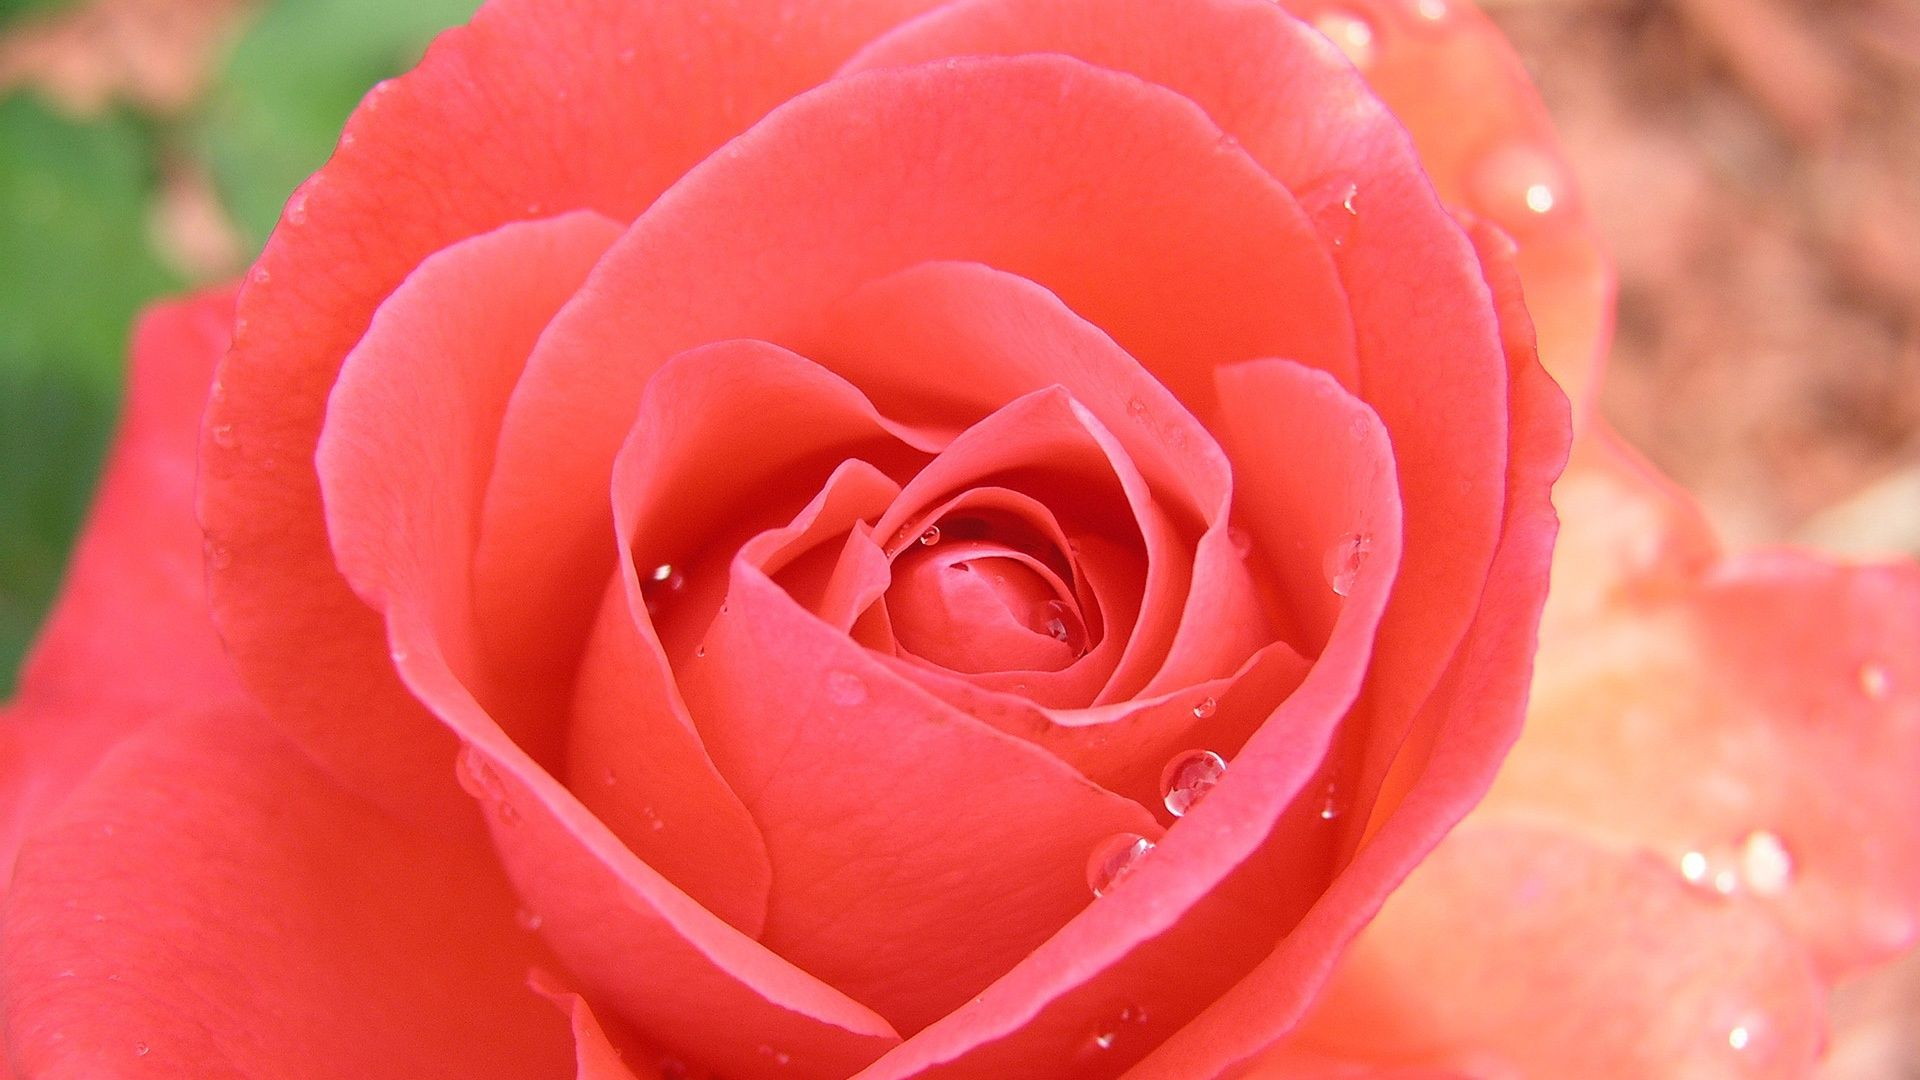 Beautiful Rose Wallpaper and Background